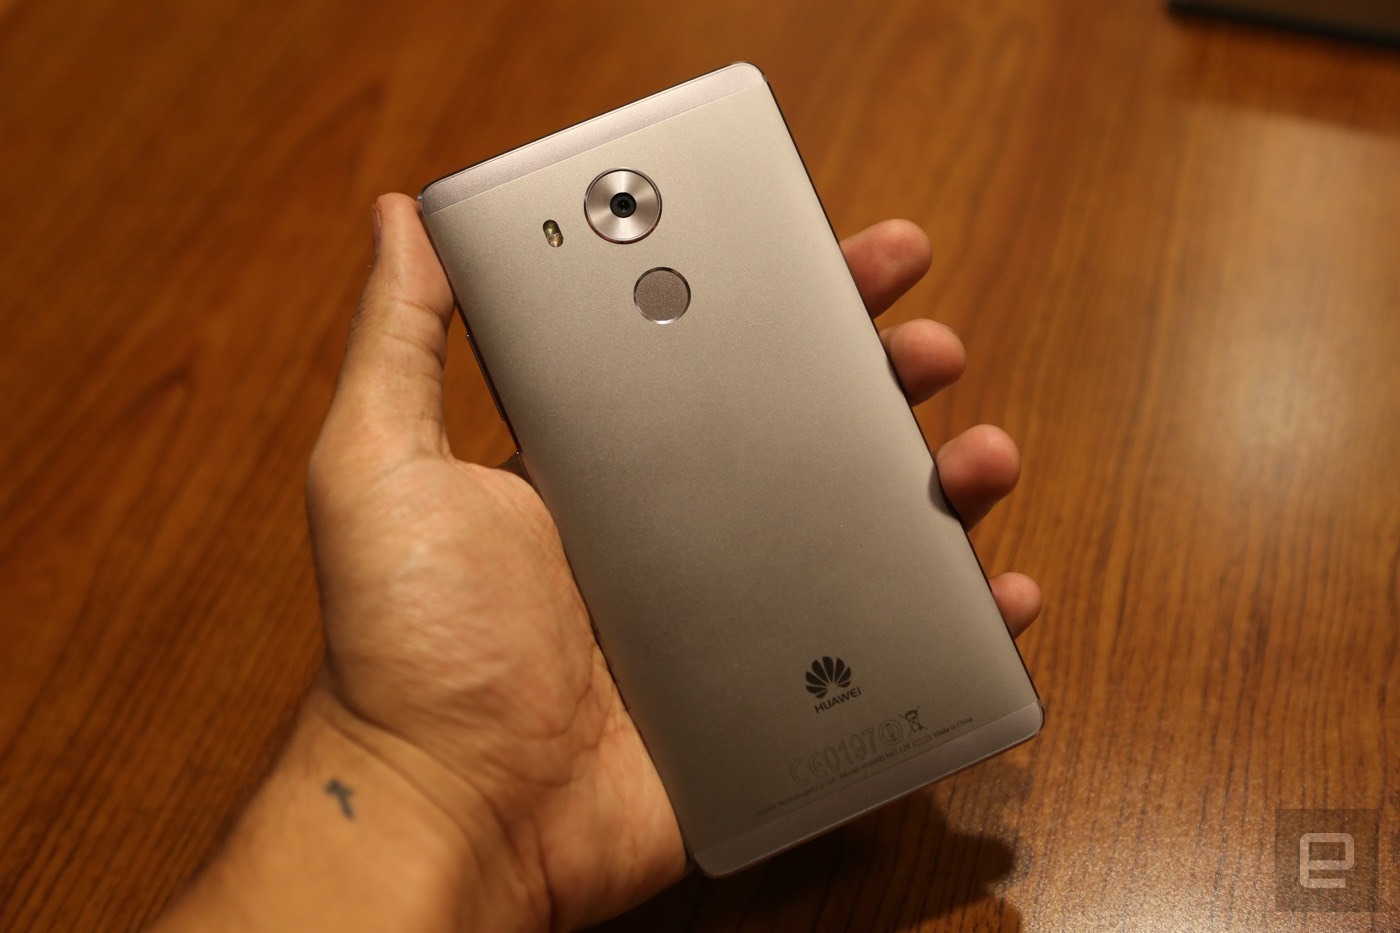 huawei mate 8 ces 2016 9